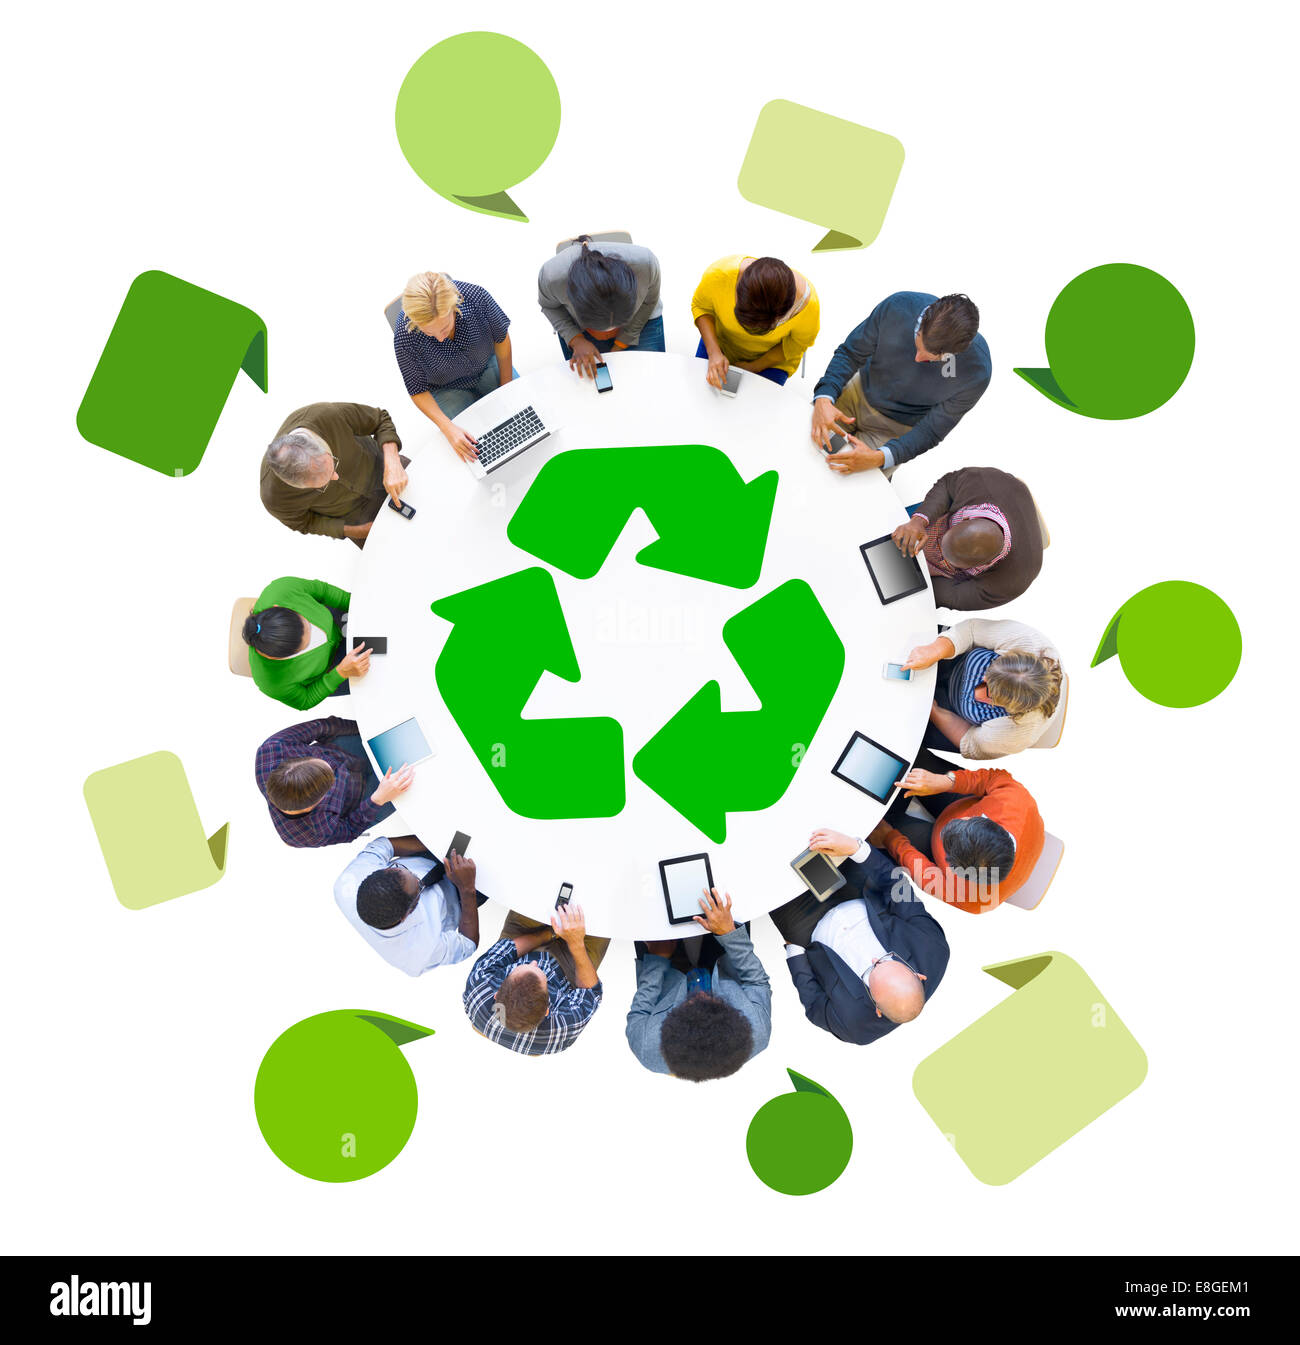 Group of People Using Digital Devices with Recycle Symbol - Stock Image